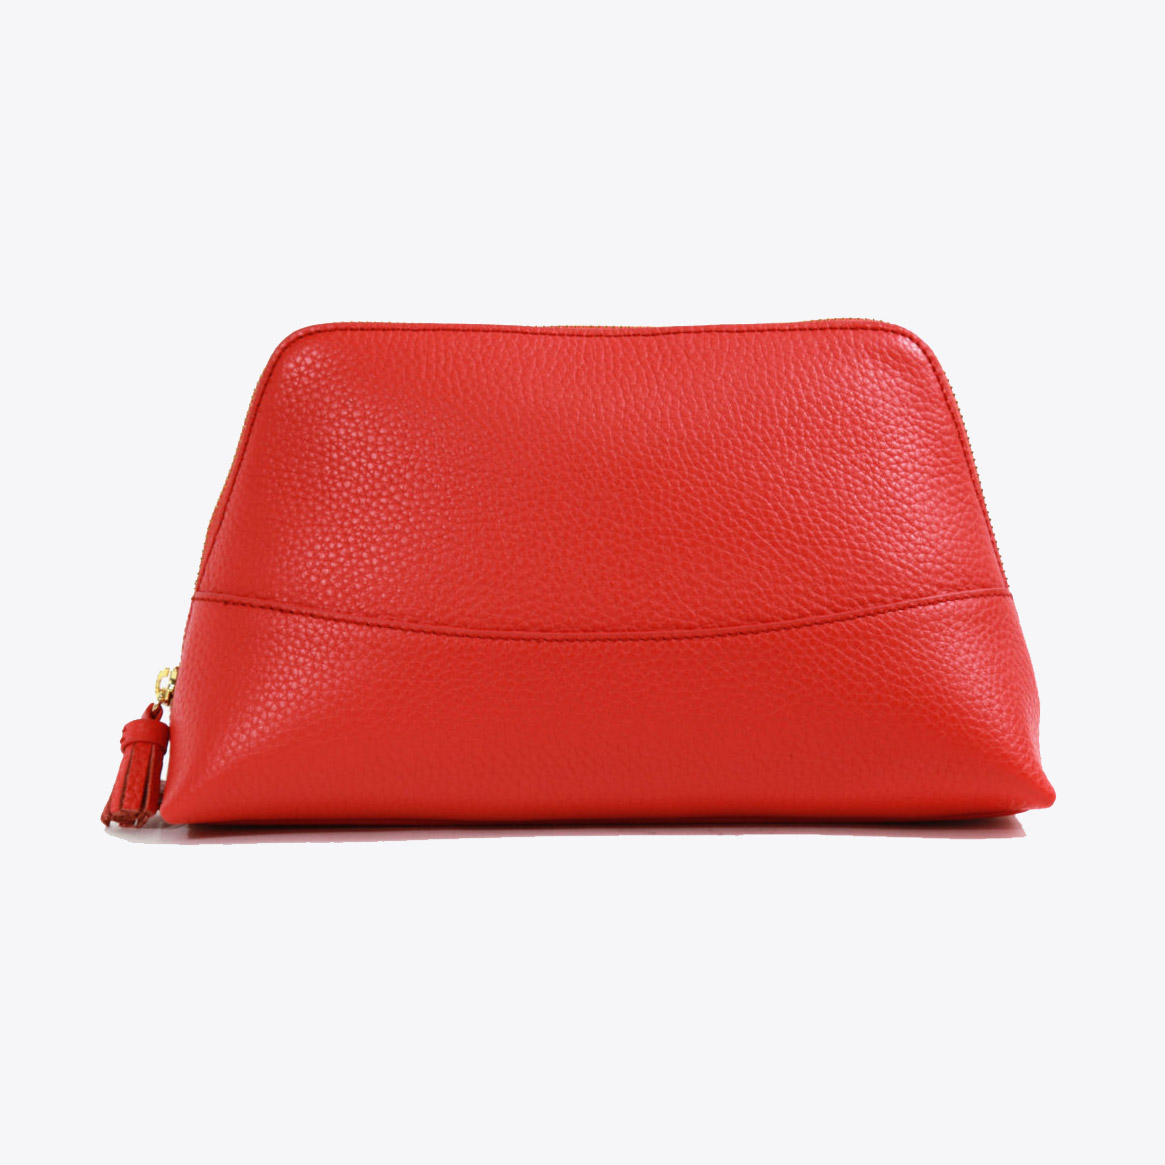 Neely Chloe Handbags Pebble Cosmetic Pouch Scarlet Large